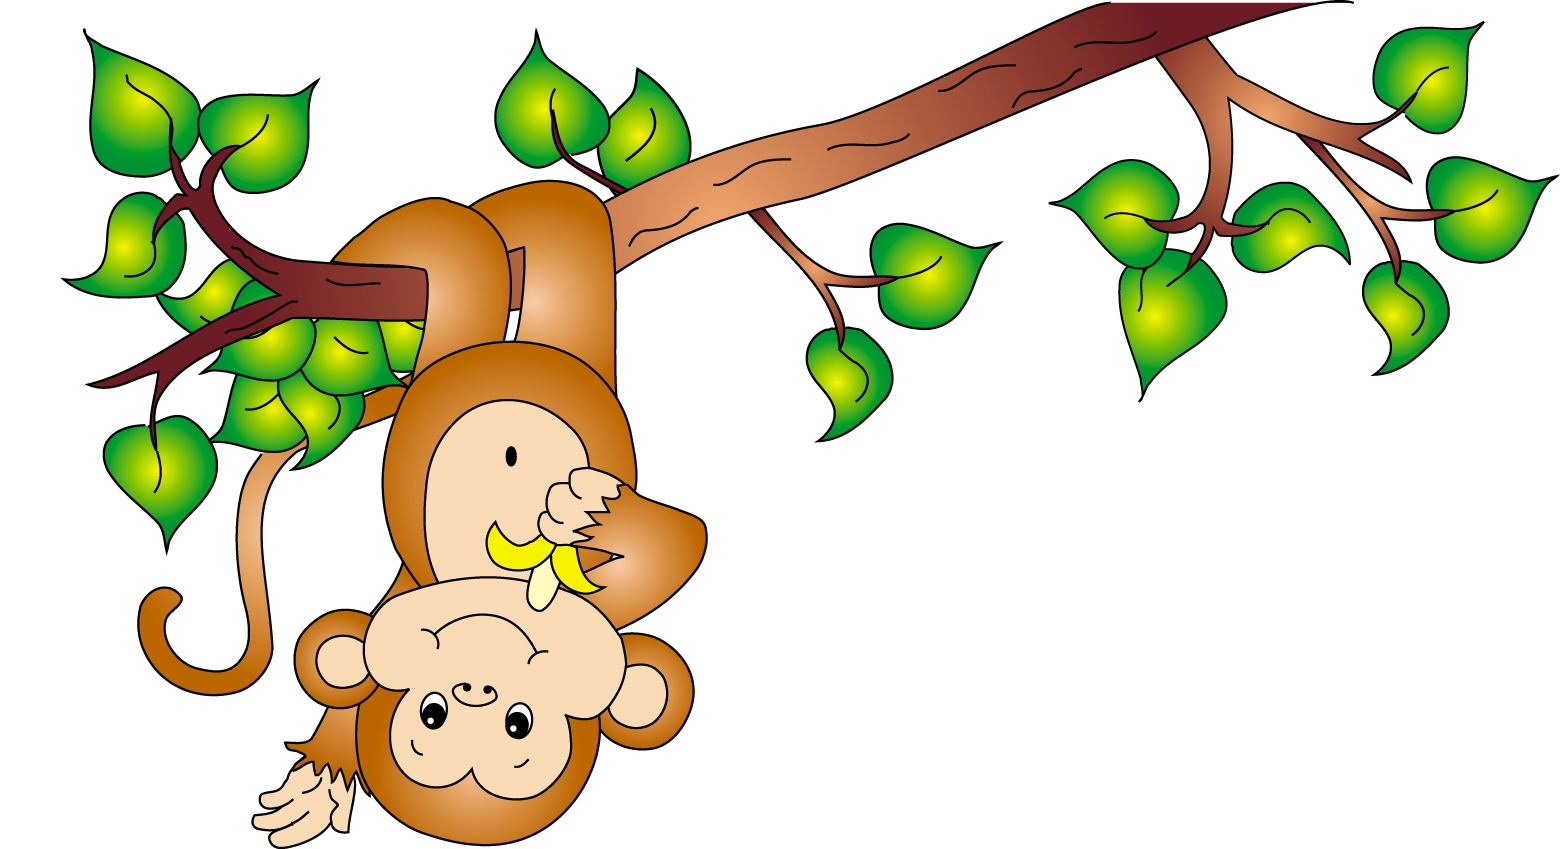 Monkeys And Bananas Cute Wallpaper Monkey People In Trees Clipart 20 Free Cliparts Download